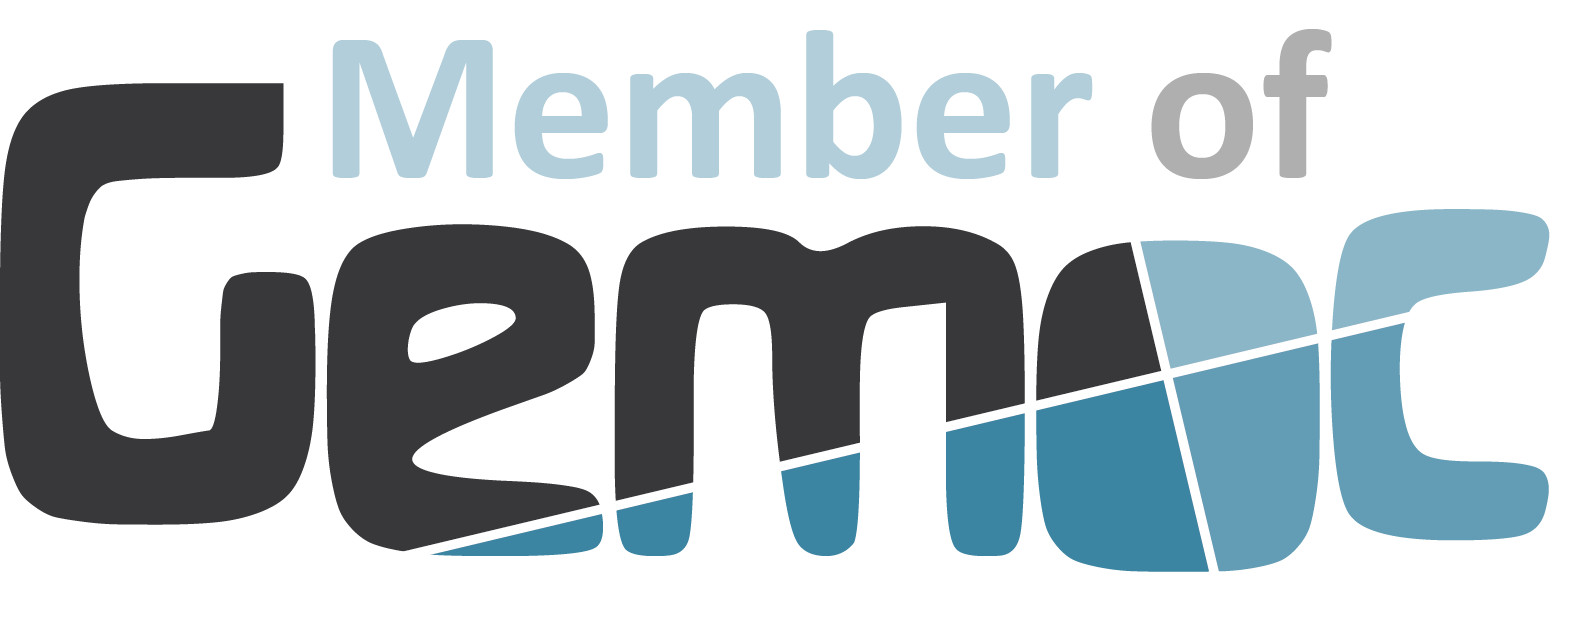 Member of the Gemoc initiative